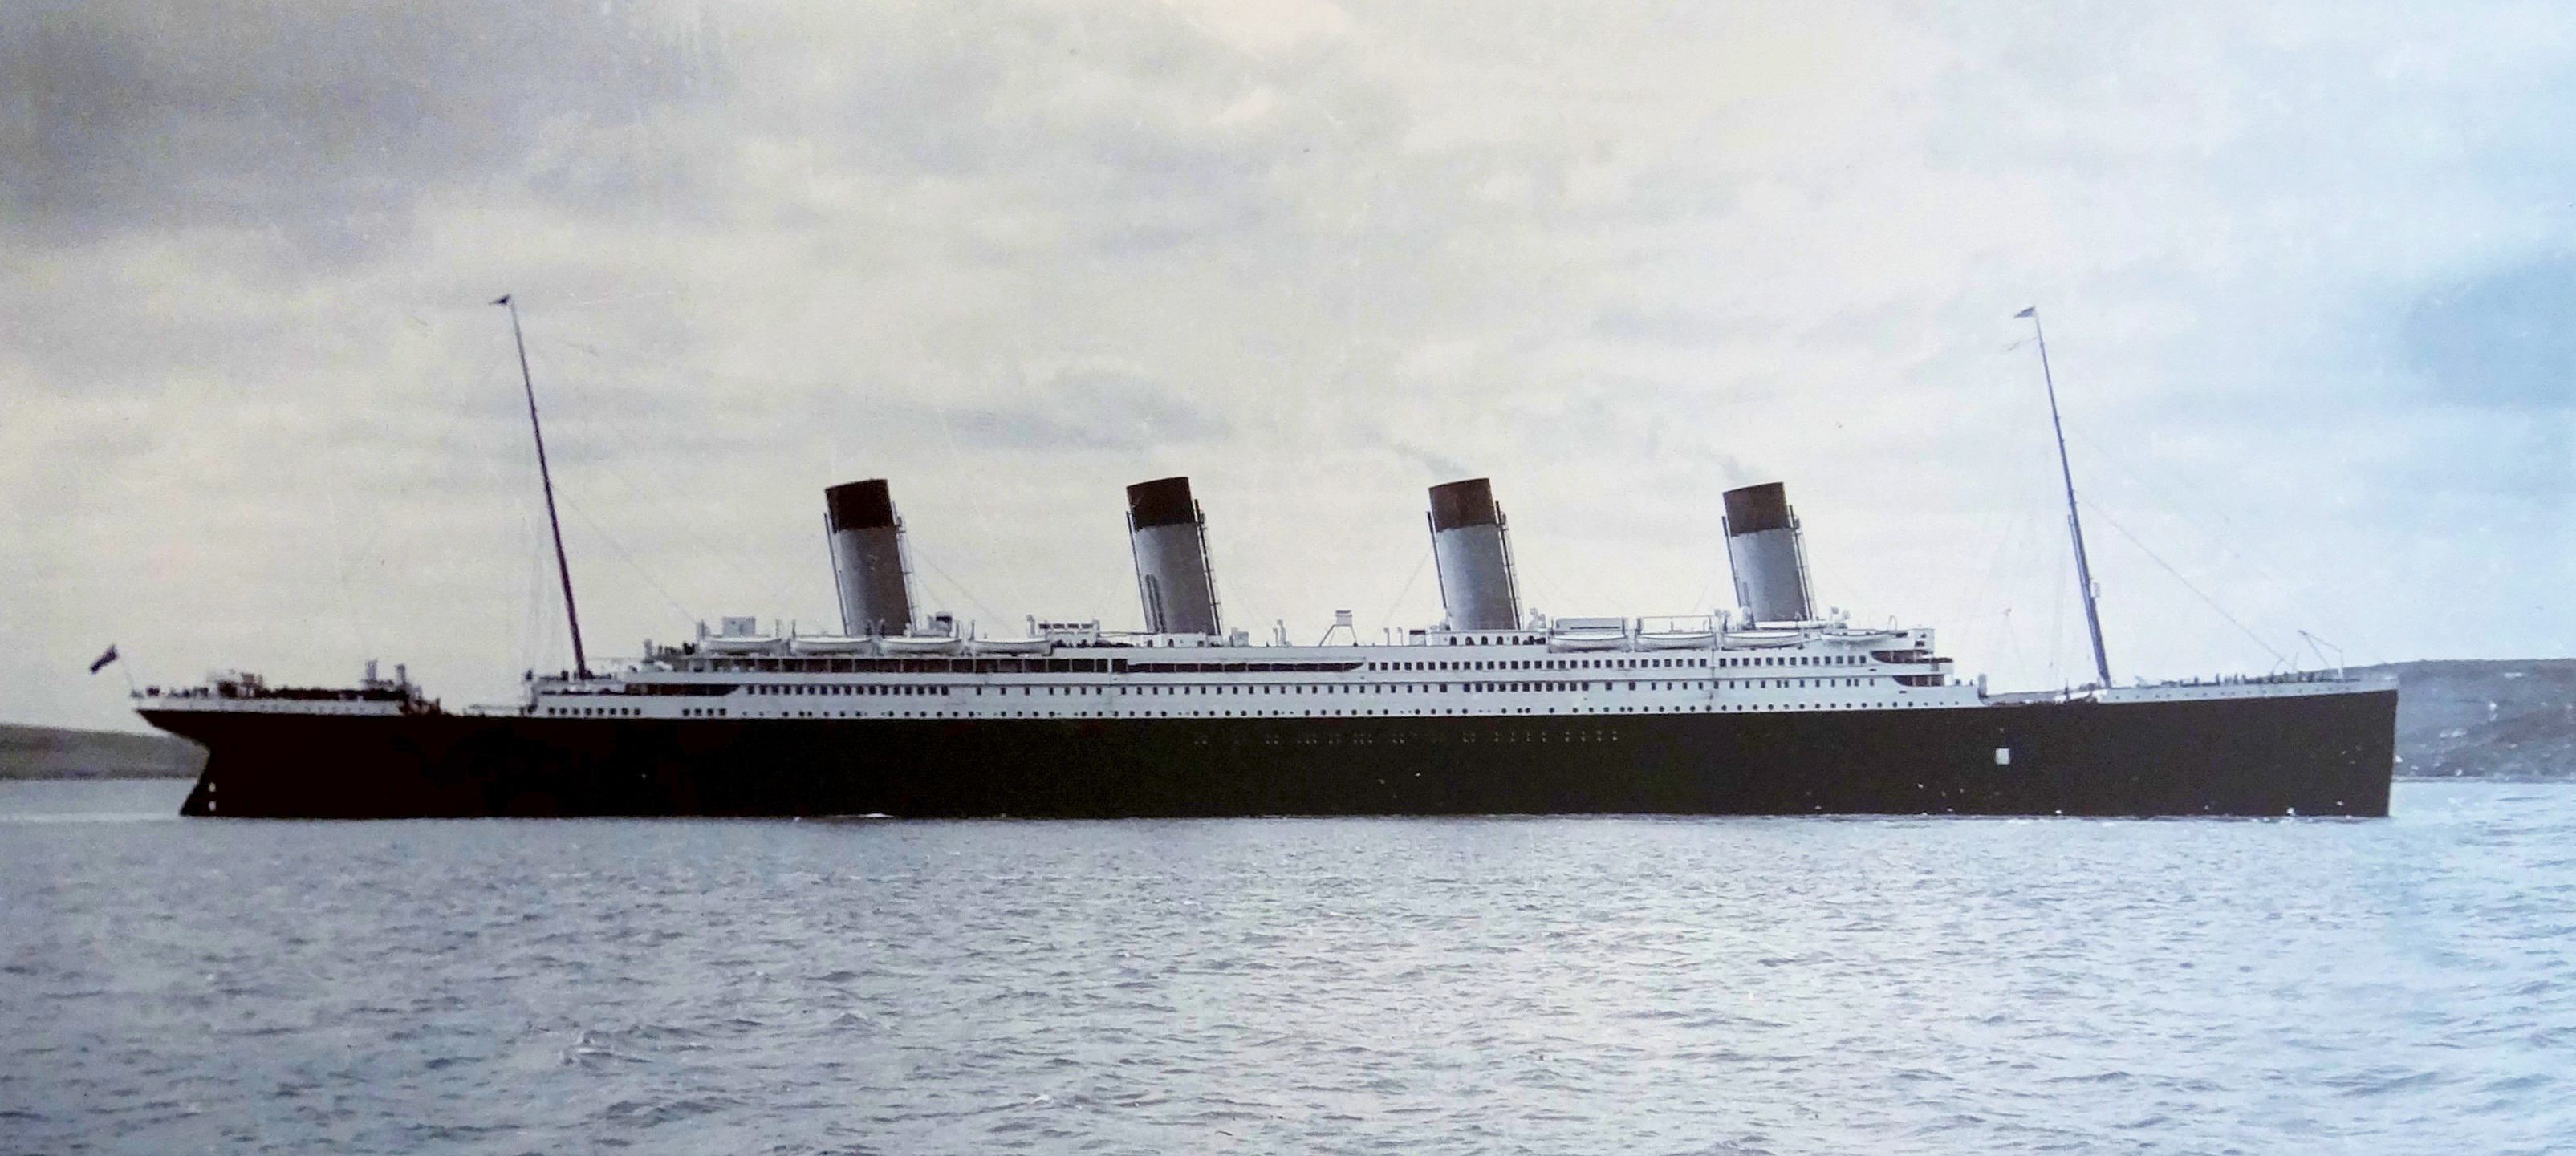 Titanic at Queenstown, April 11, 1912